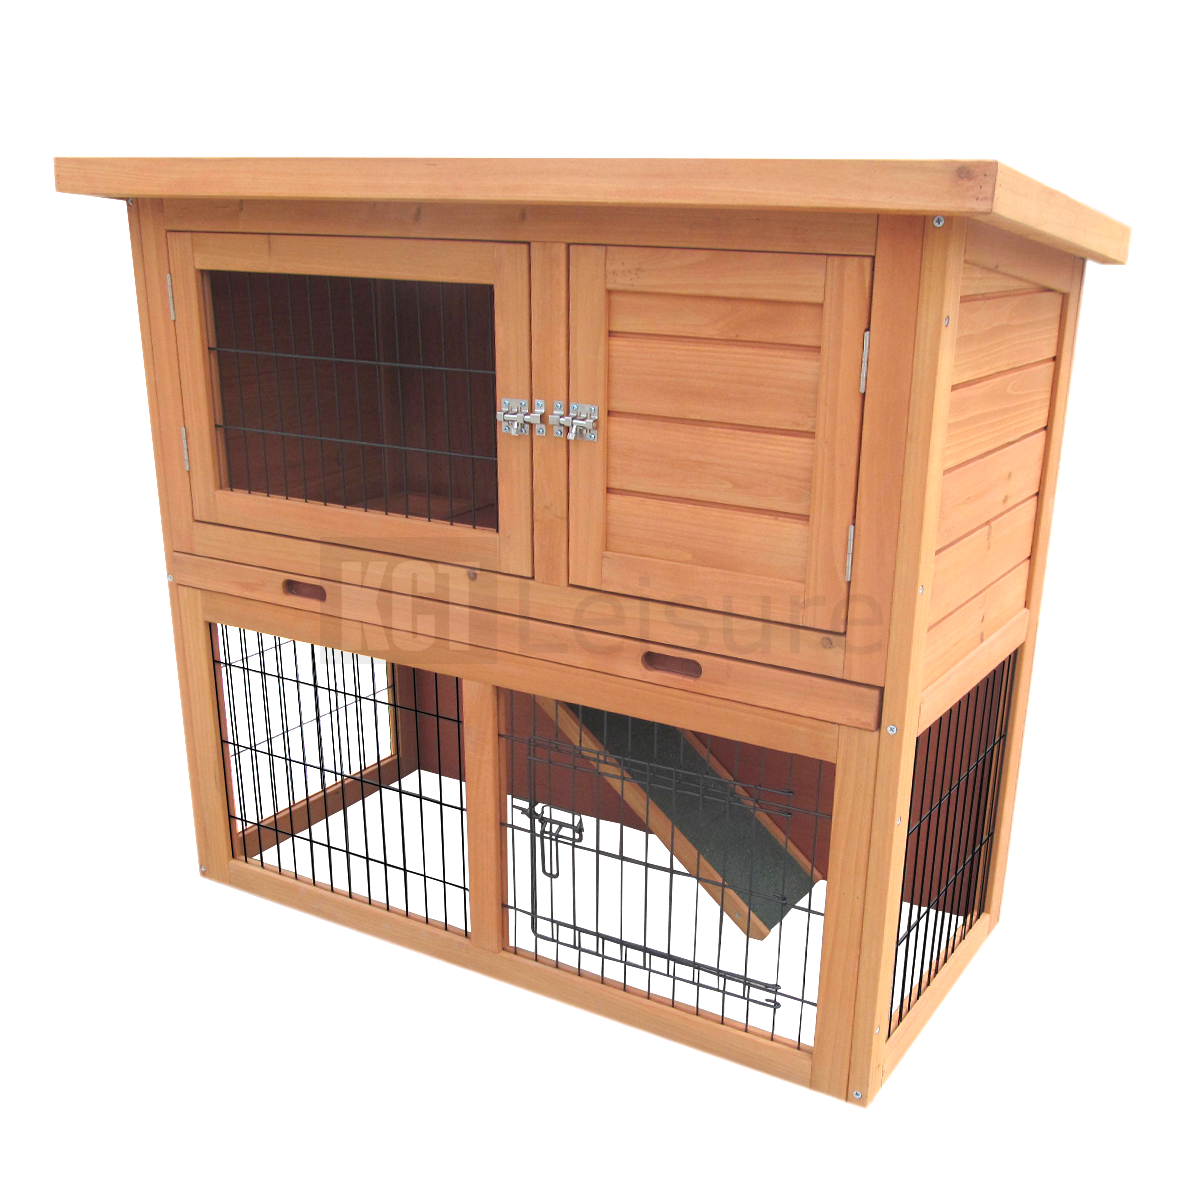 3ft Outdoor Rabbit Hutch And Run With 2 Two Tier Wooden